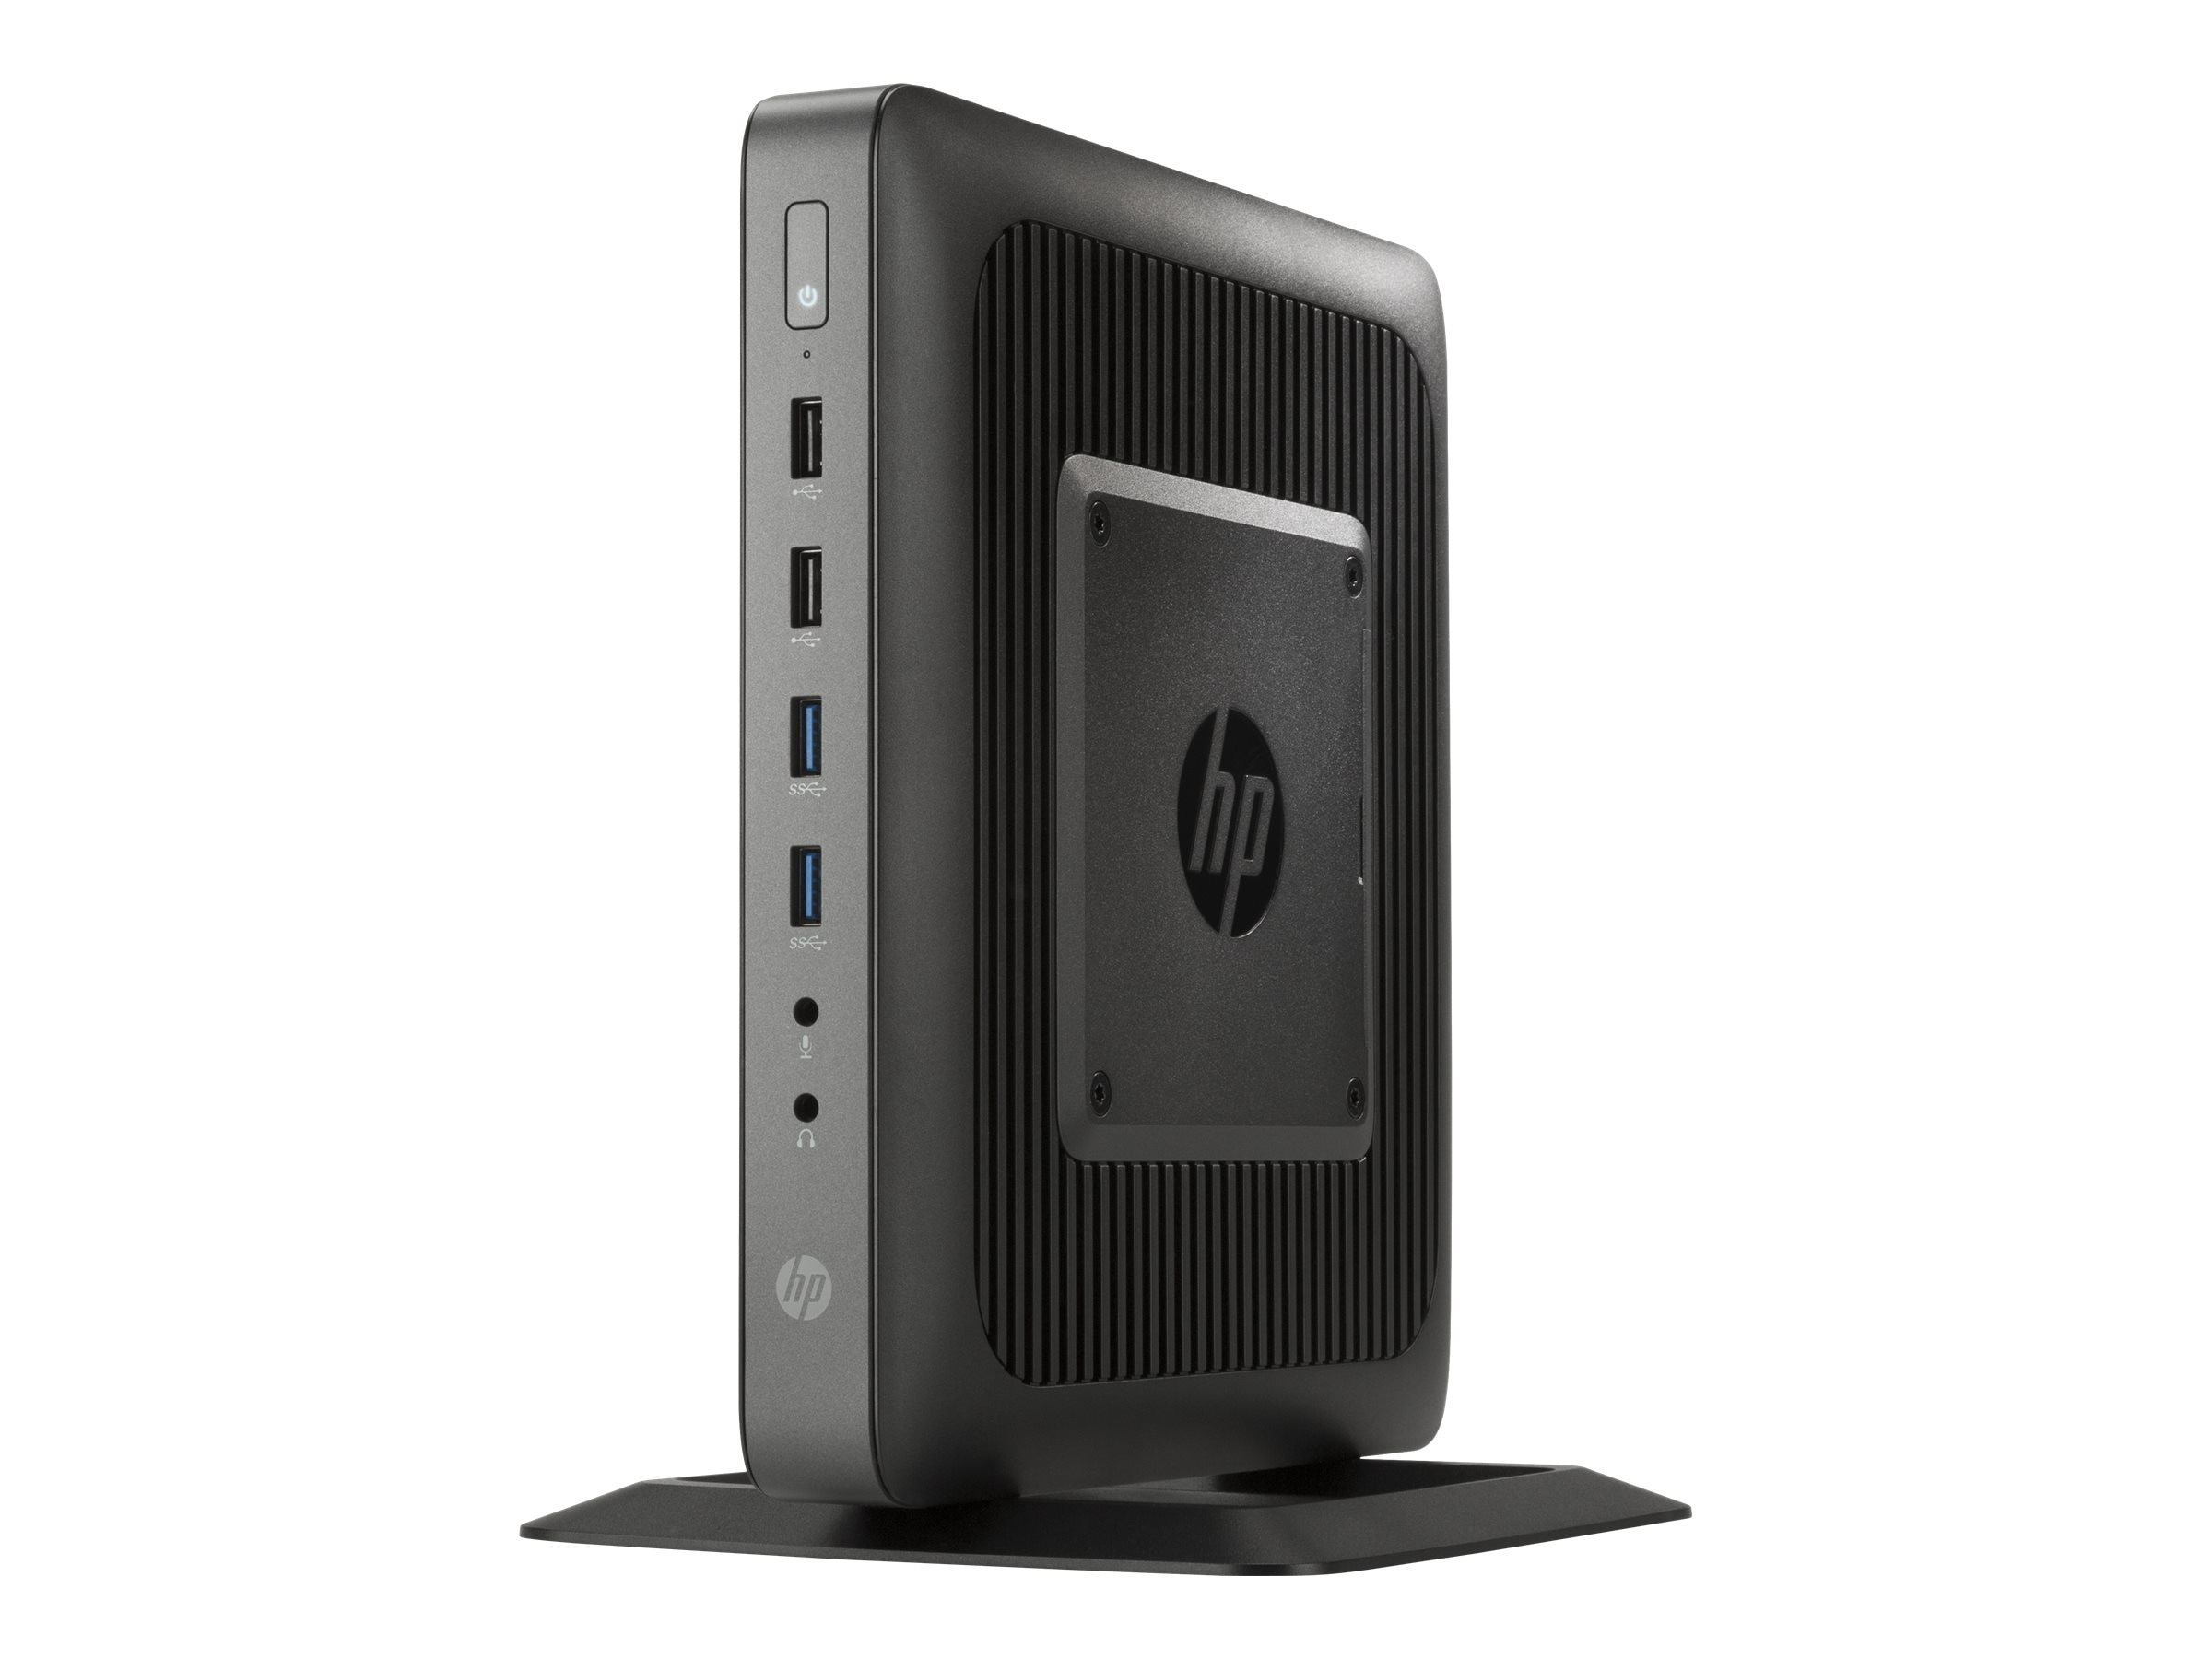 HP t620 Flexible Thin Client AMD QC GX-415GA 1.5GHz 4GB 16GB Flash HD8330E ac BT WES8